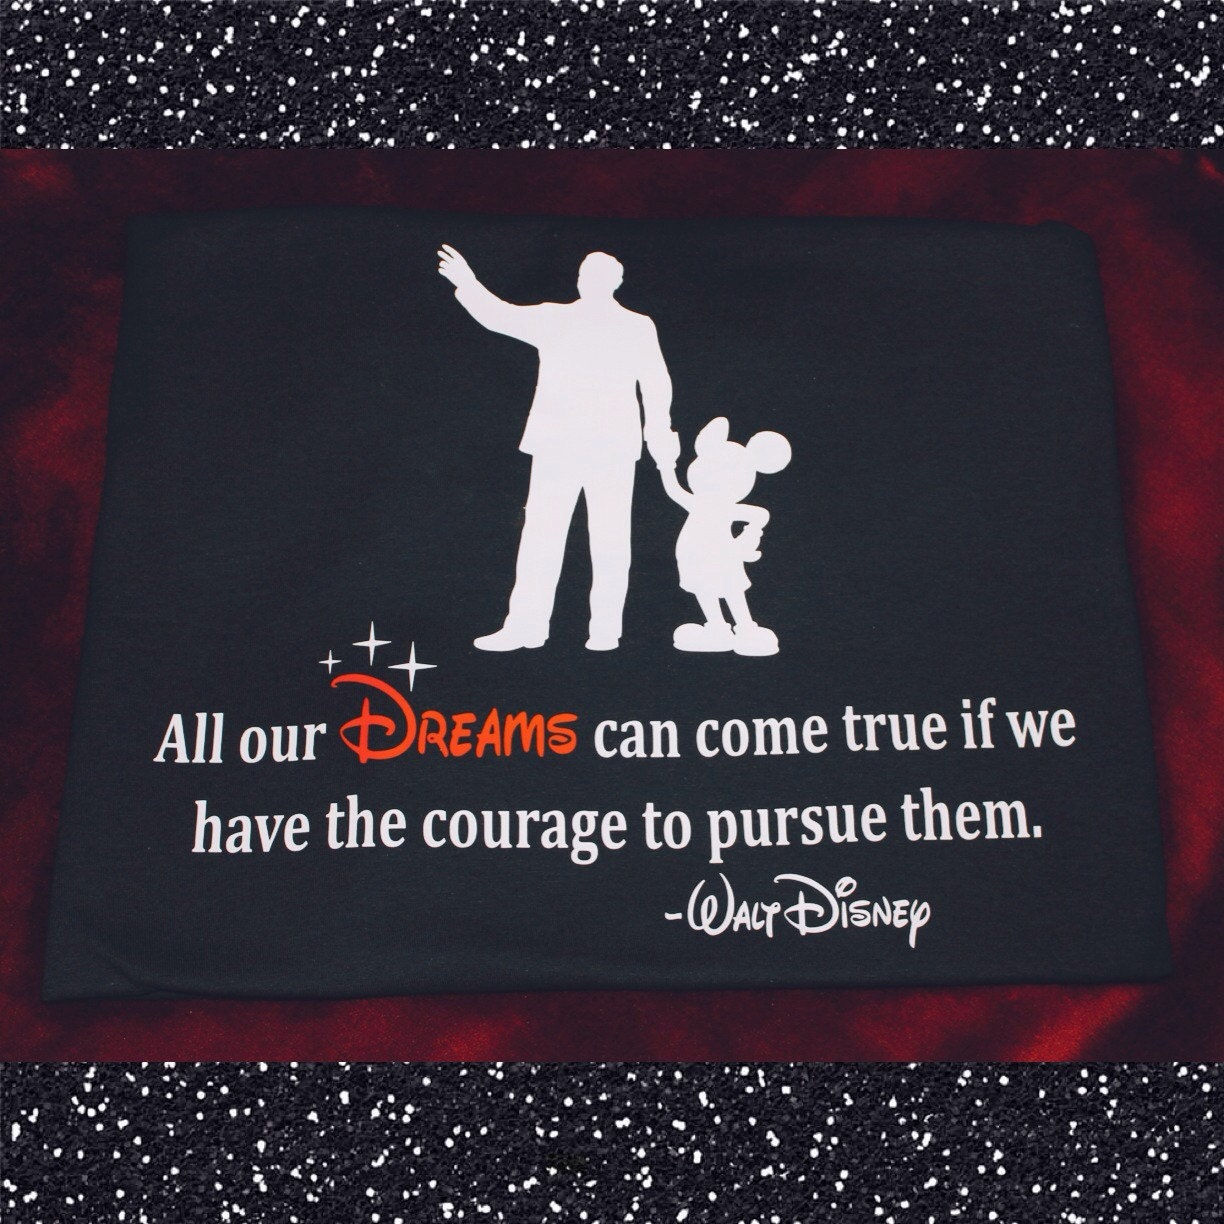 Walt Disney Quote. All our Dreams can come true if we